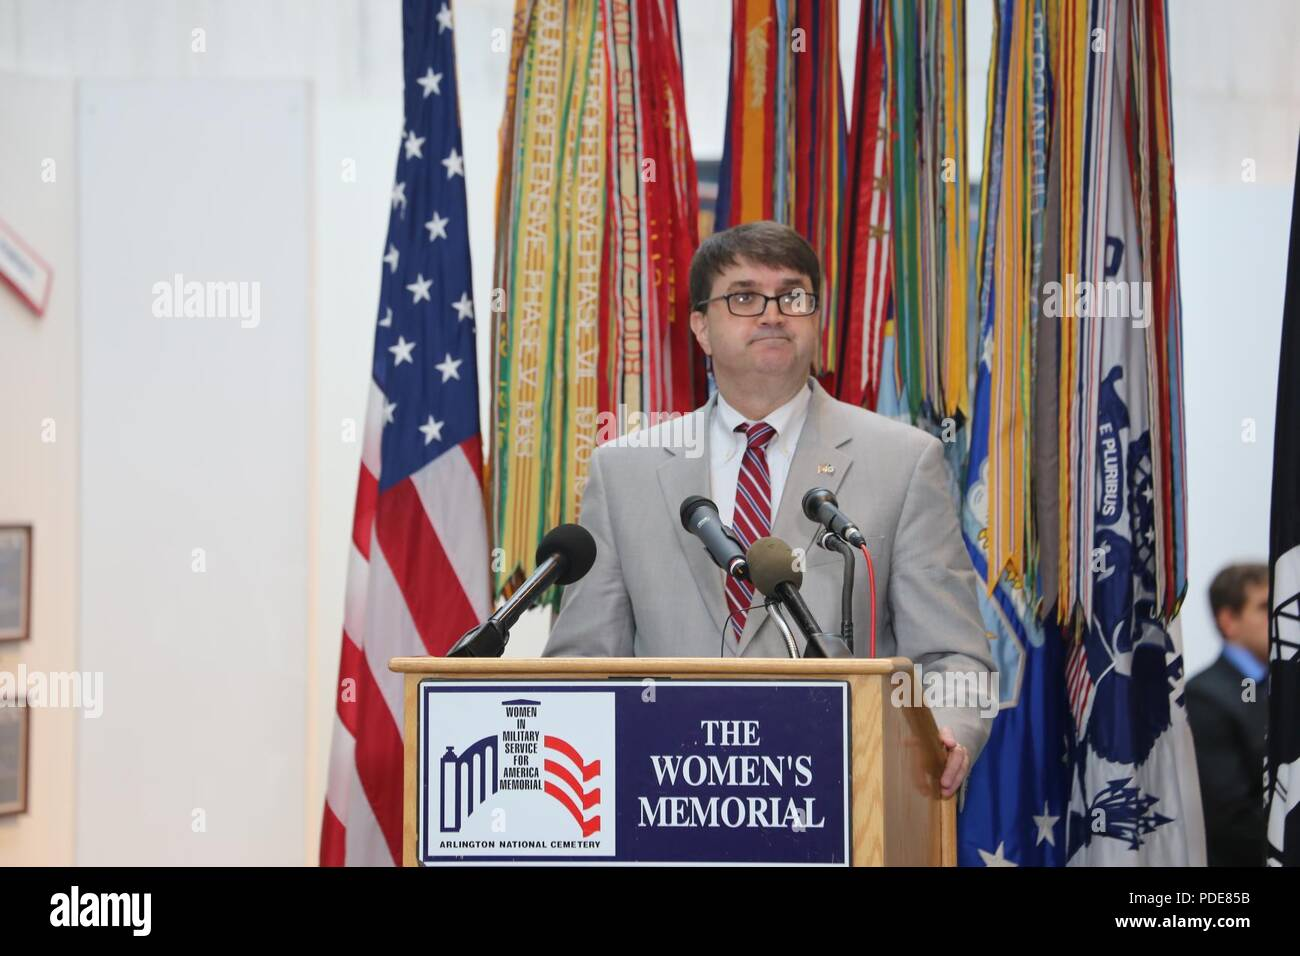 Veterans Affairs Acting Secretary Robert Wilkie delivers a speech at the Women in the Military Wreath Laying Ceremony in Arlington, Virginia, May 17, 2018. The ceremony, which was held at the Women in Military Service for America Memorial, honored our nation's servicewomen and women veterans for their courage and achievements, and remembered women who died while on duty serving the United States. - Stock Image